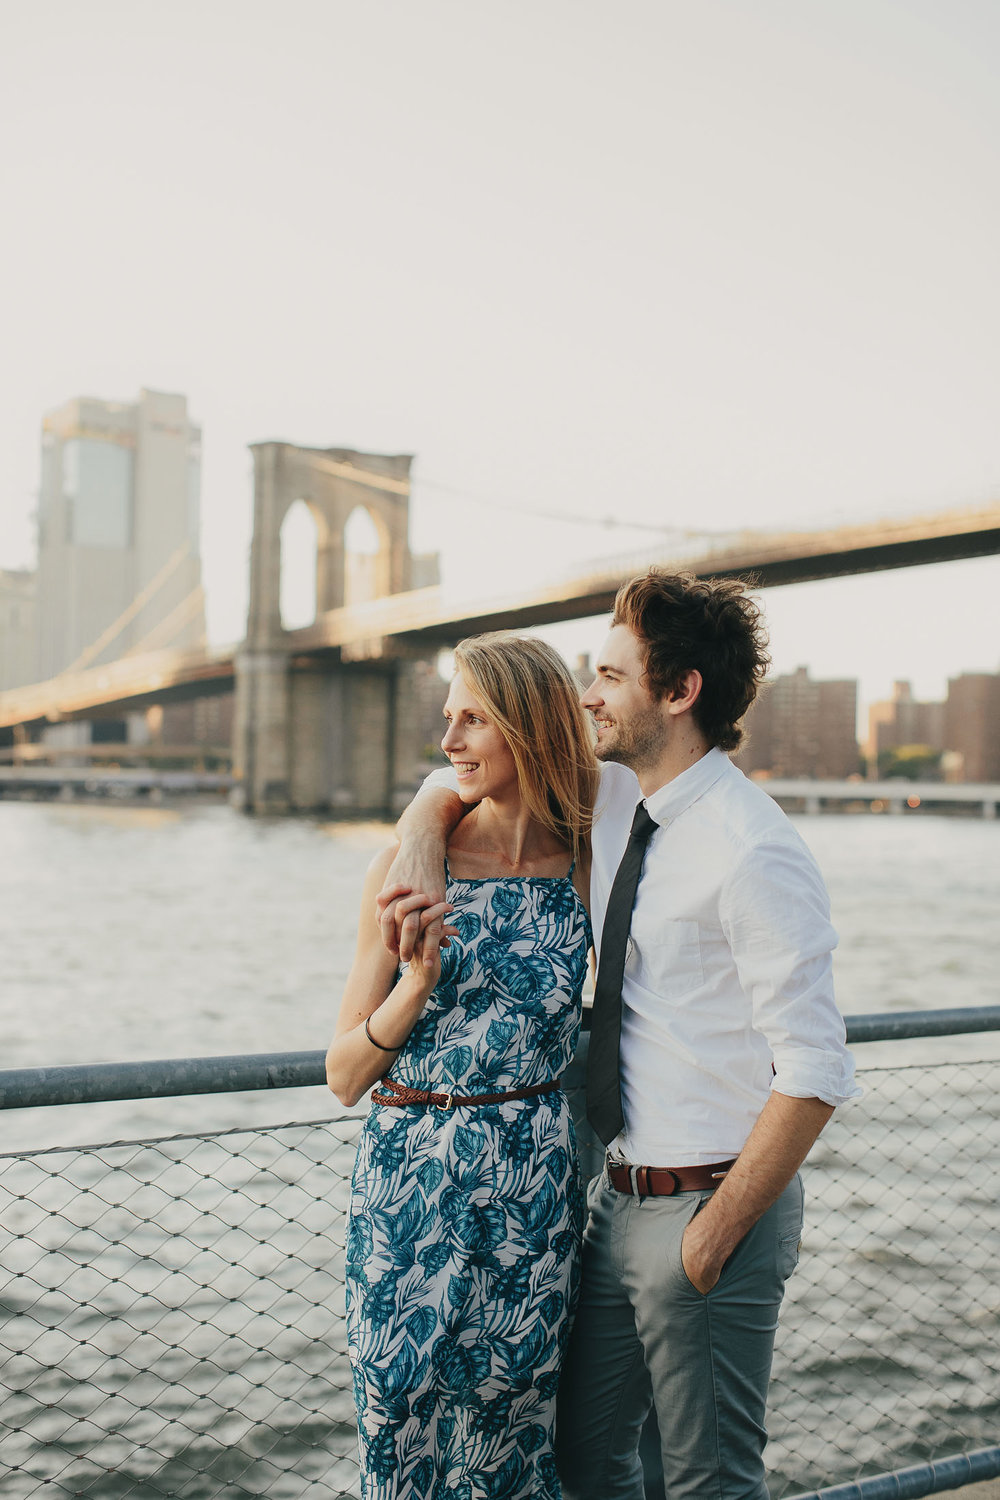 50 finch and oak engagement wedding photographer gold coast new york brooklyn.jpg